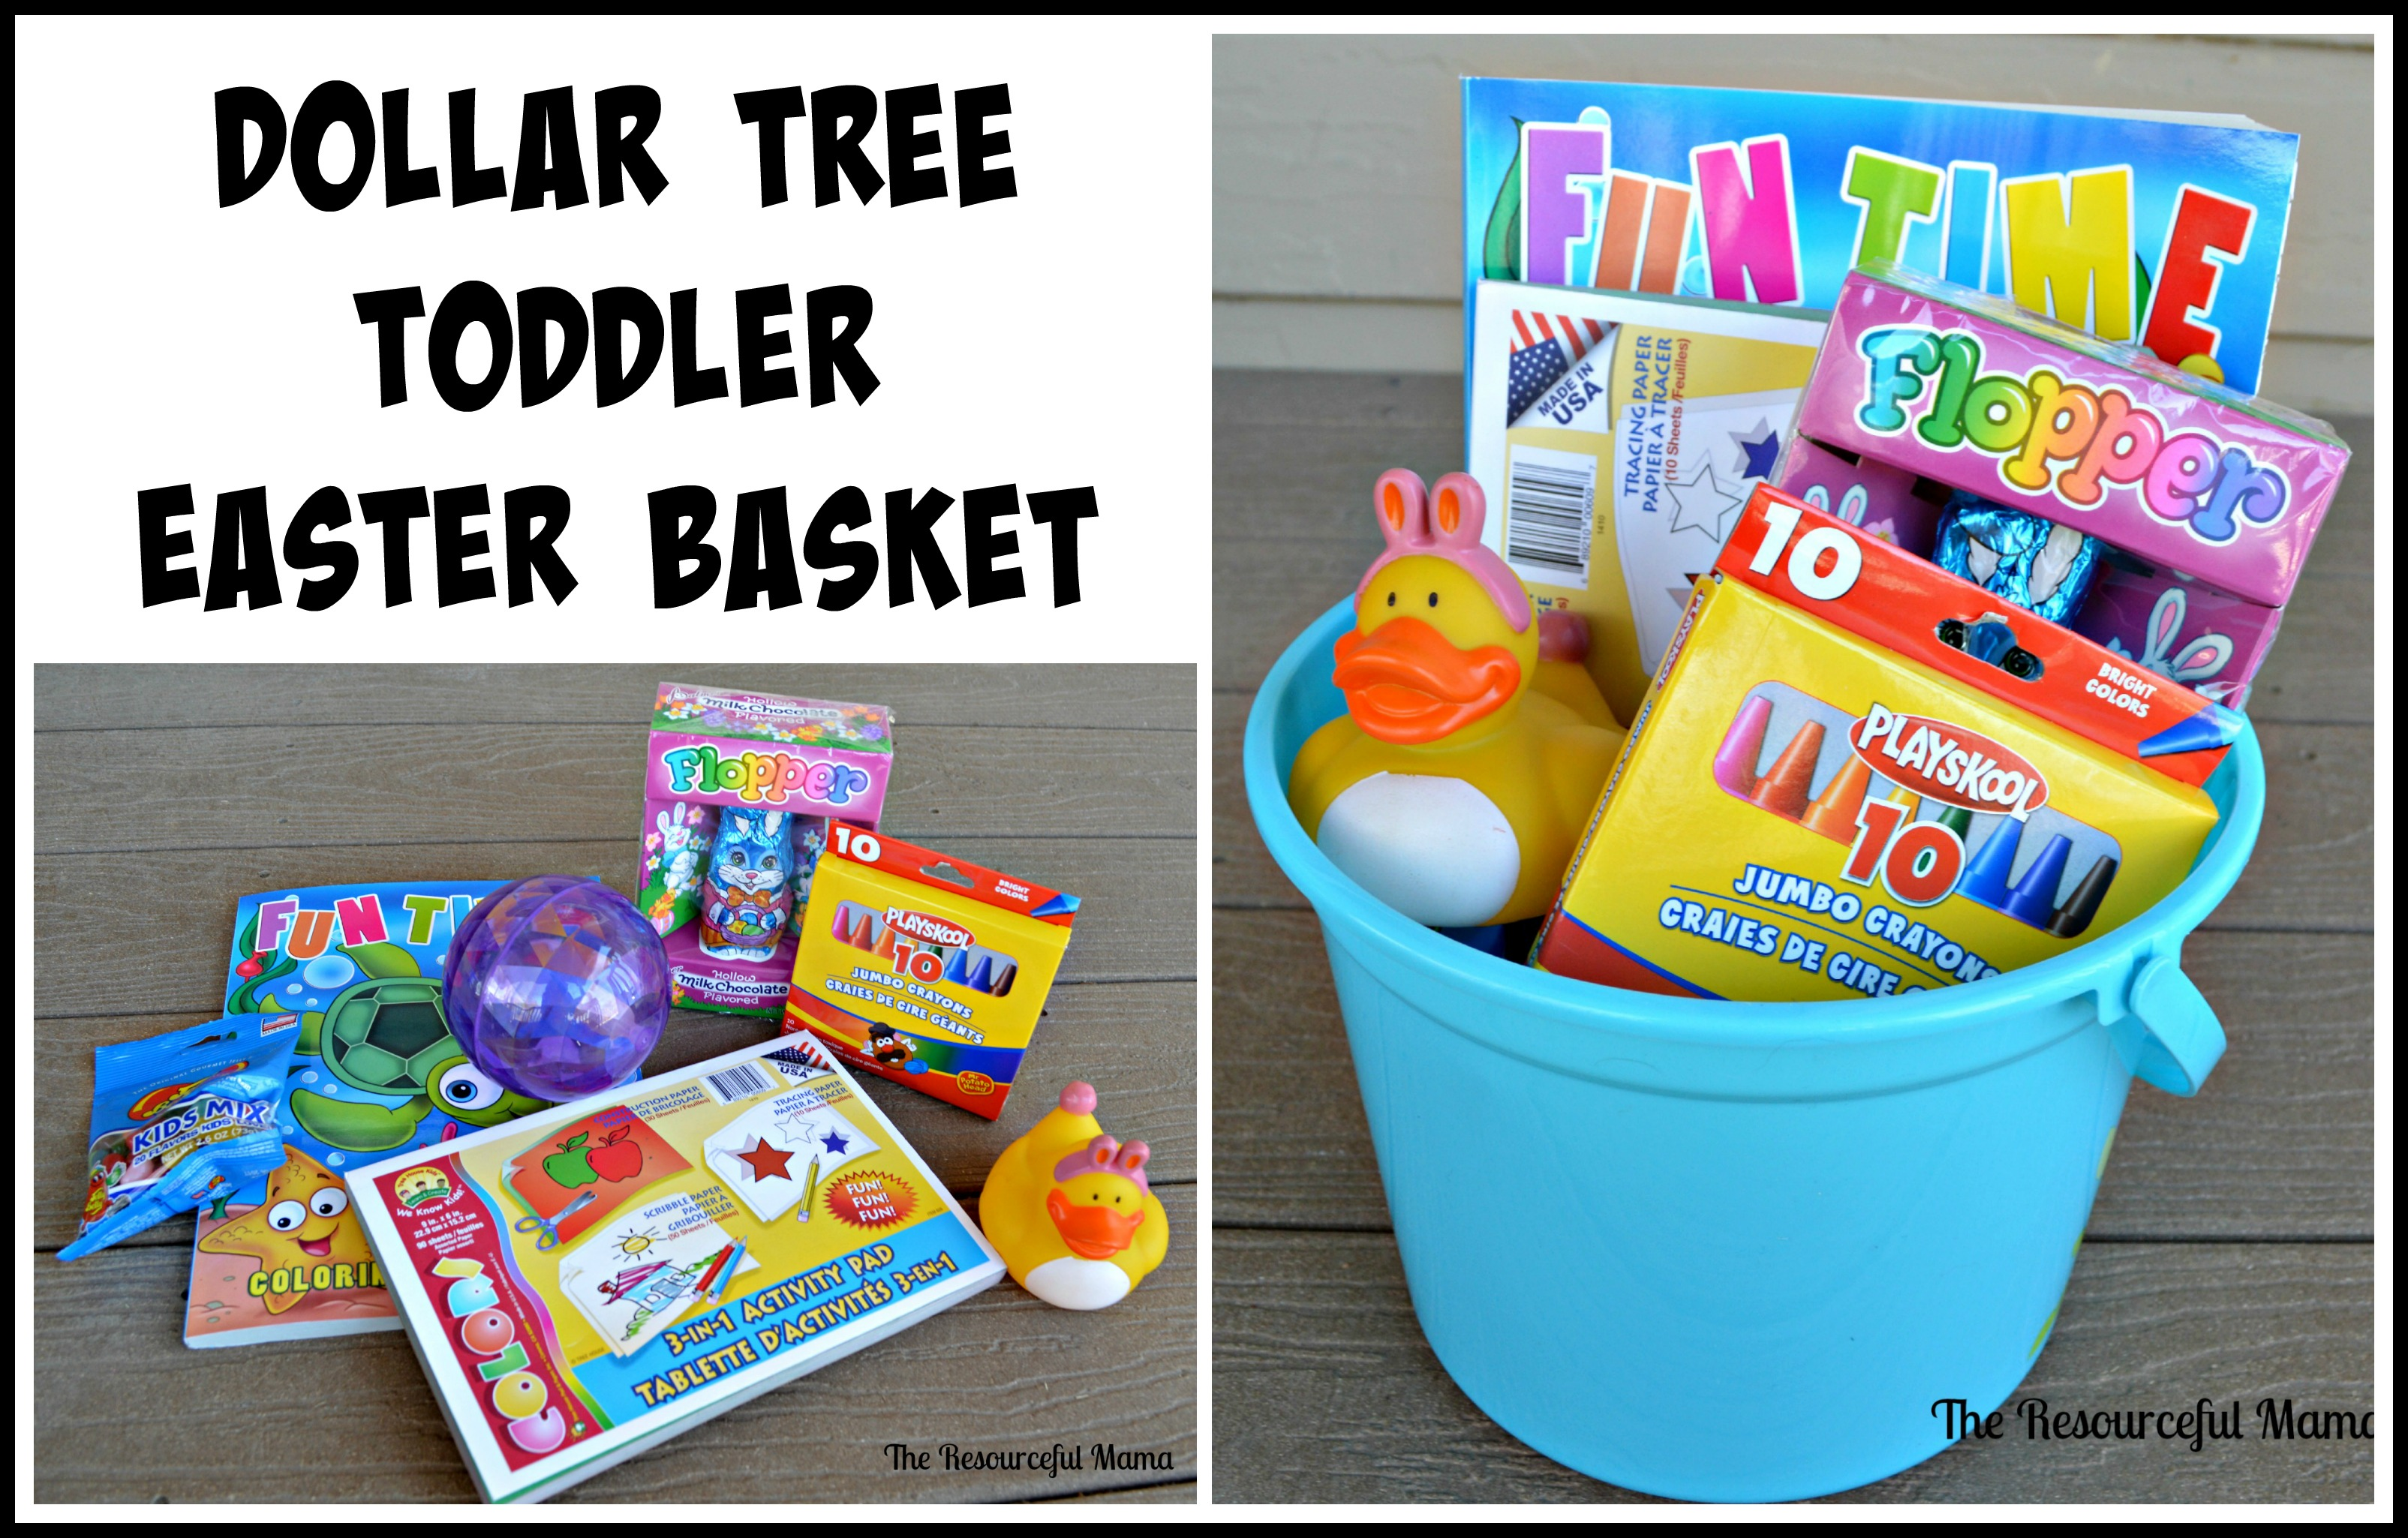 Dollar tree easter baskets the resourceful mama dollar tree easter basket toddler negle Choice Image